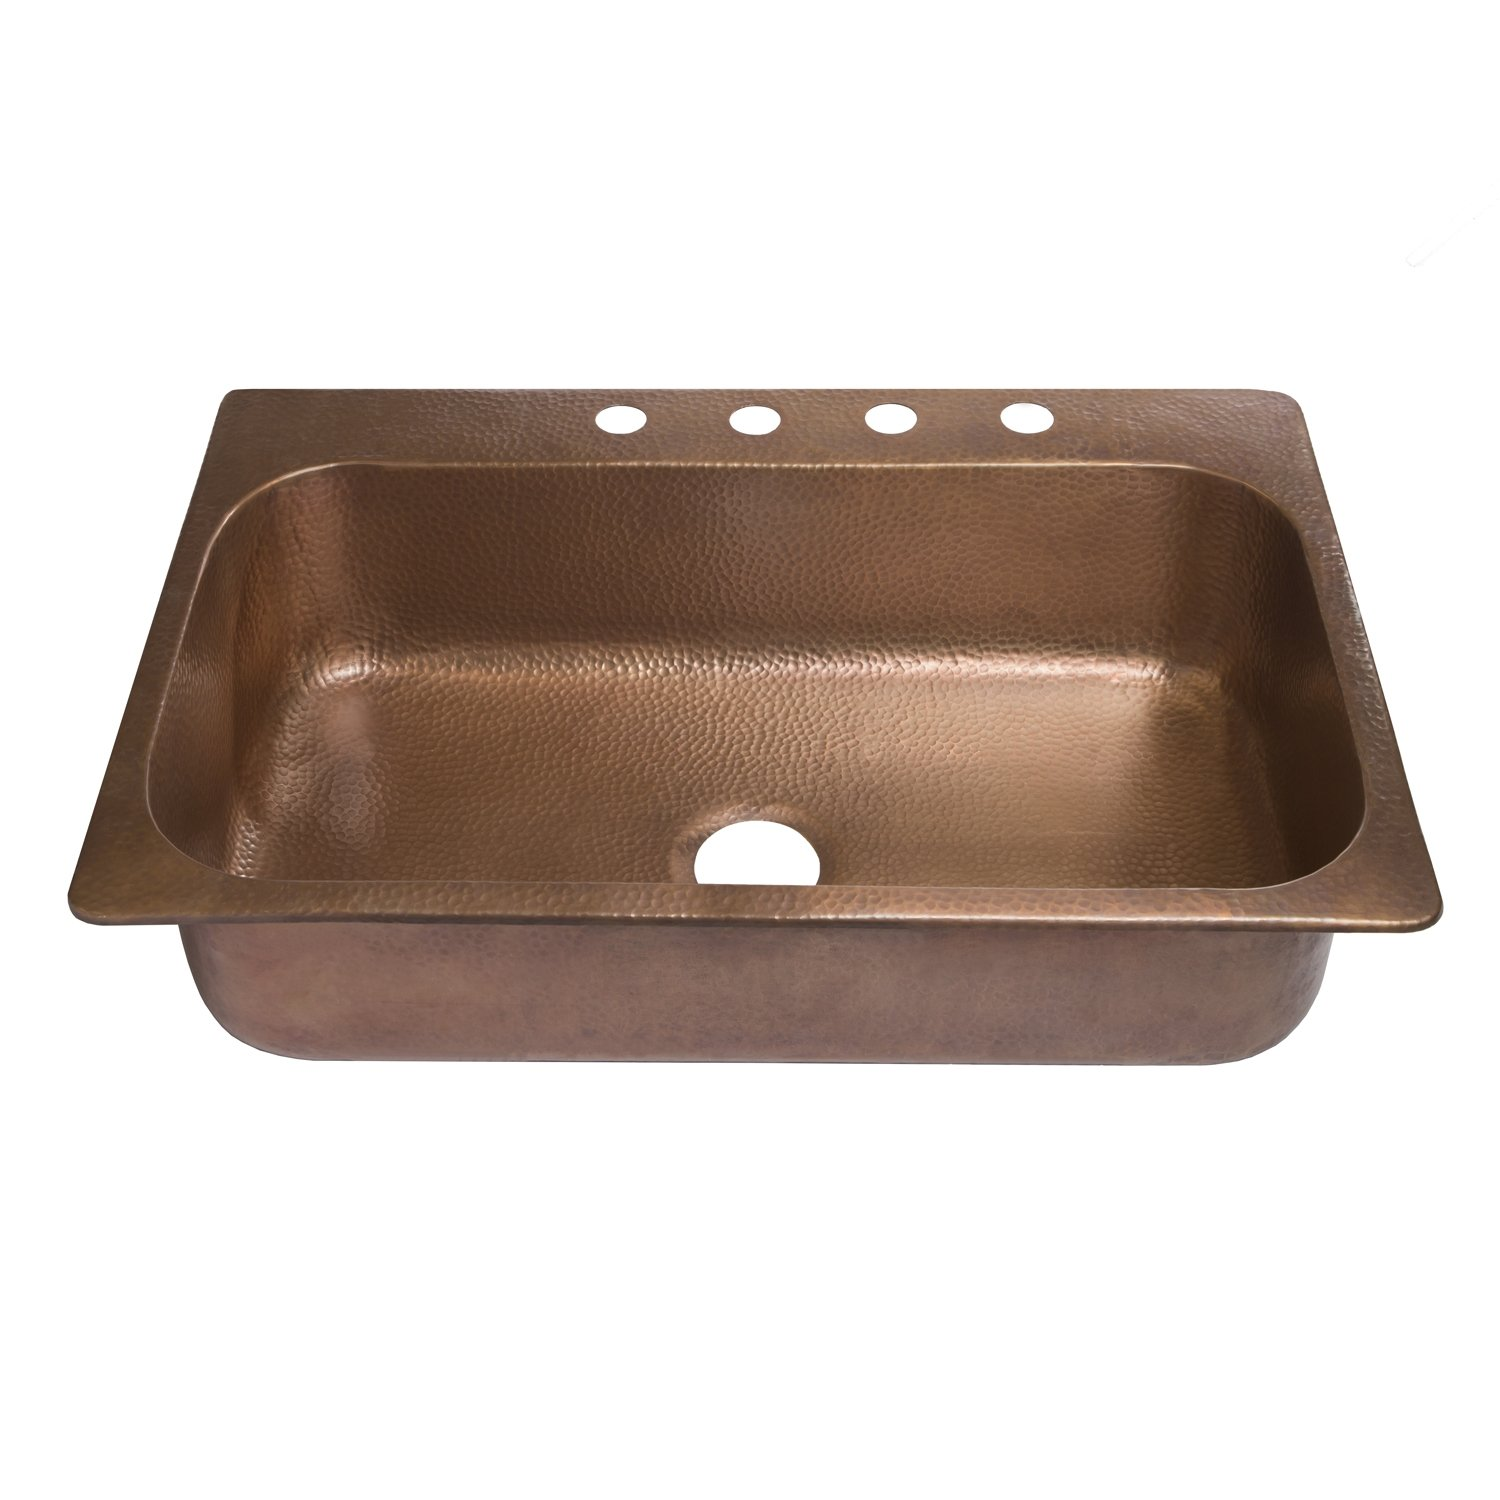 33 X 22 X 8 Antique Copper Sinkology SK101-33AC4-WG-B  Angelico 4-Hole Copper Drop-In Kitchen Sink Kit With Roe Bottom Grid And Strainer Drain Copper Kitchen Sink